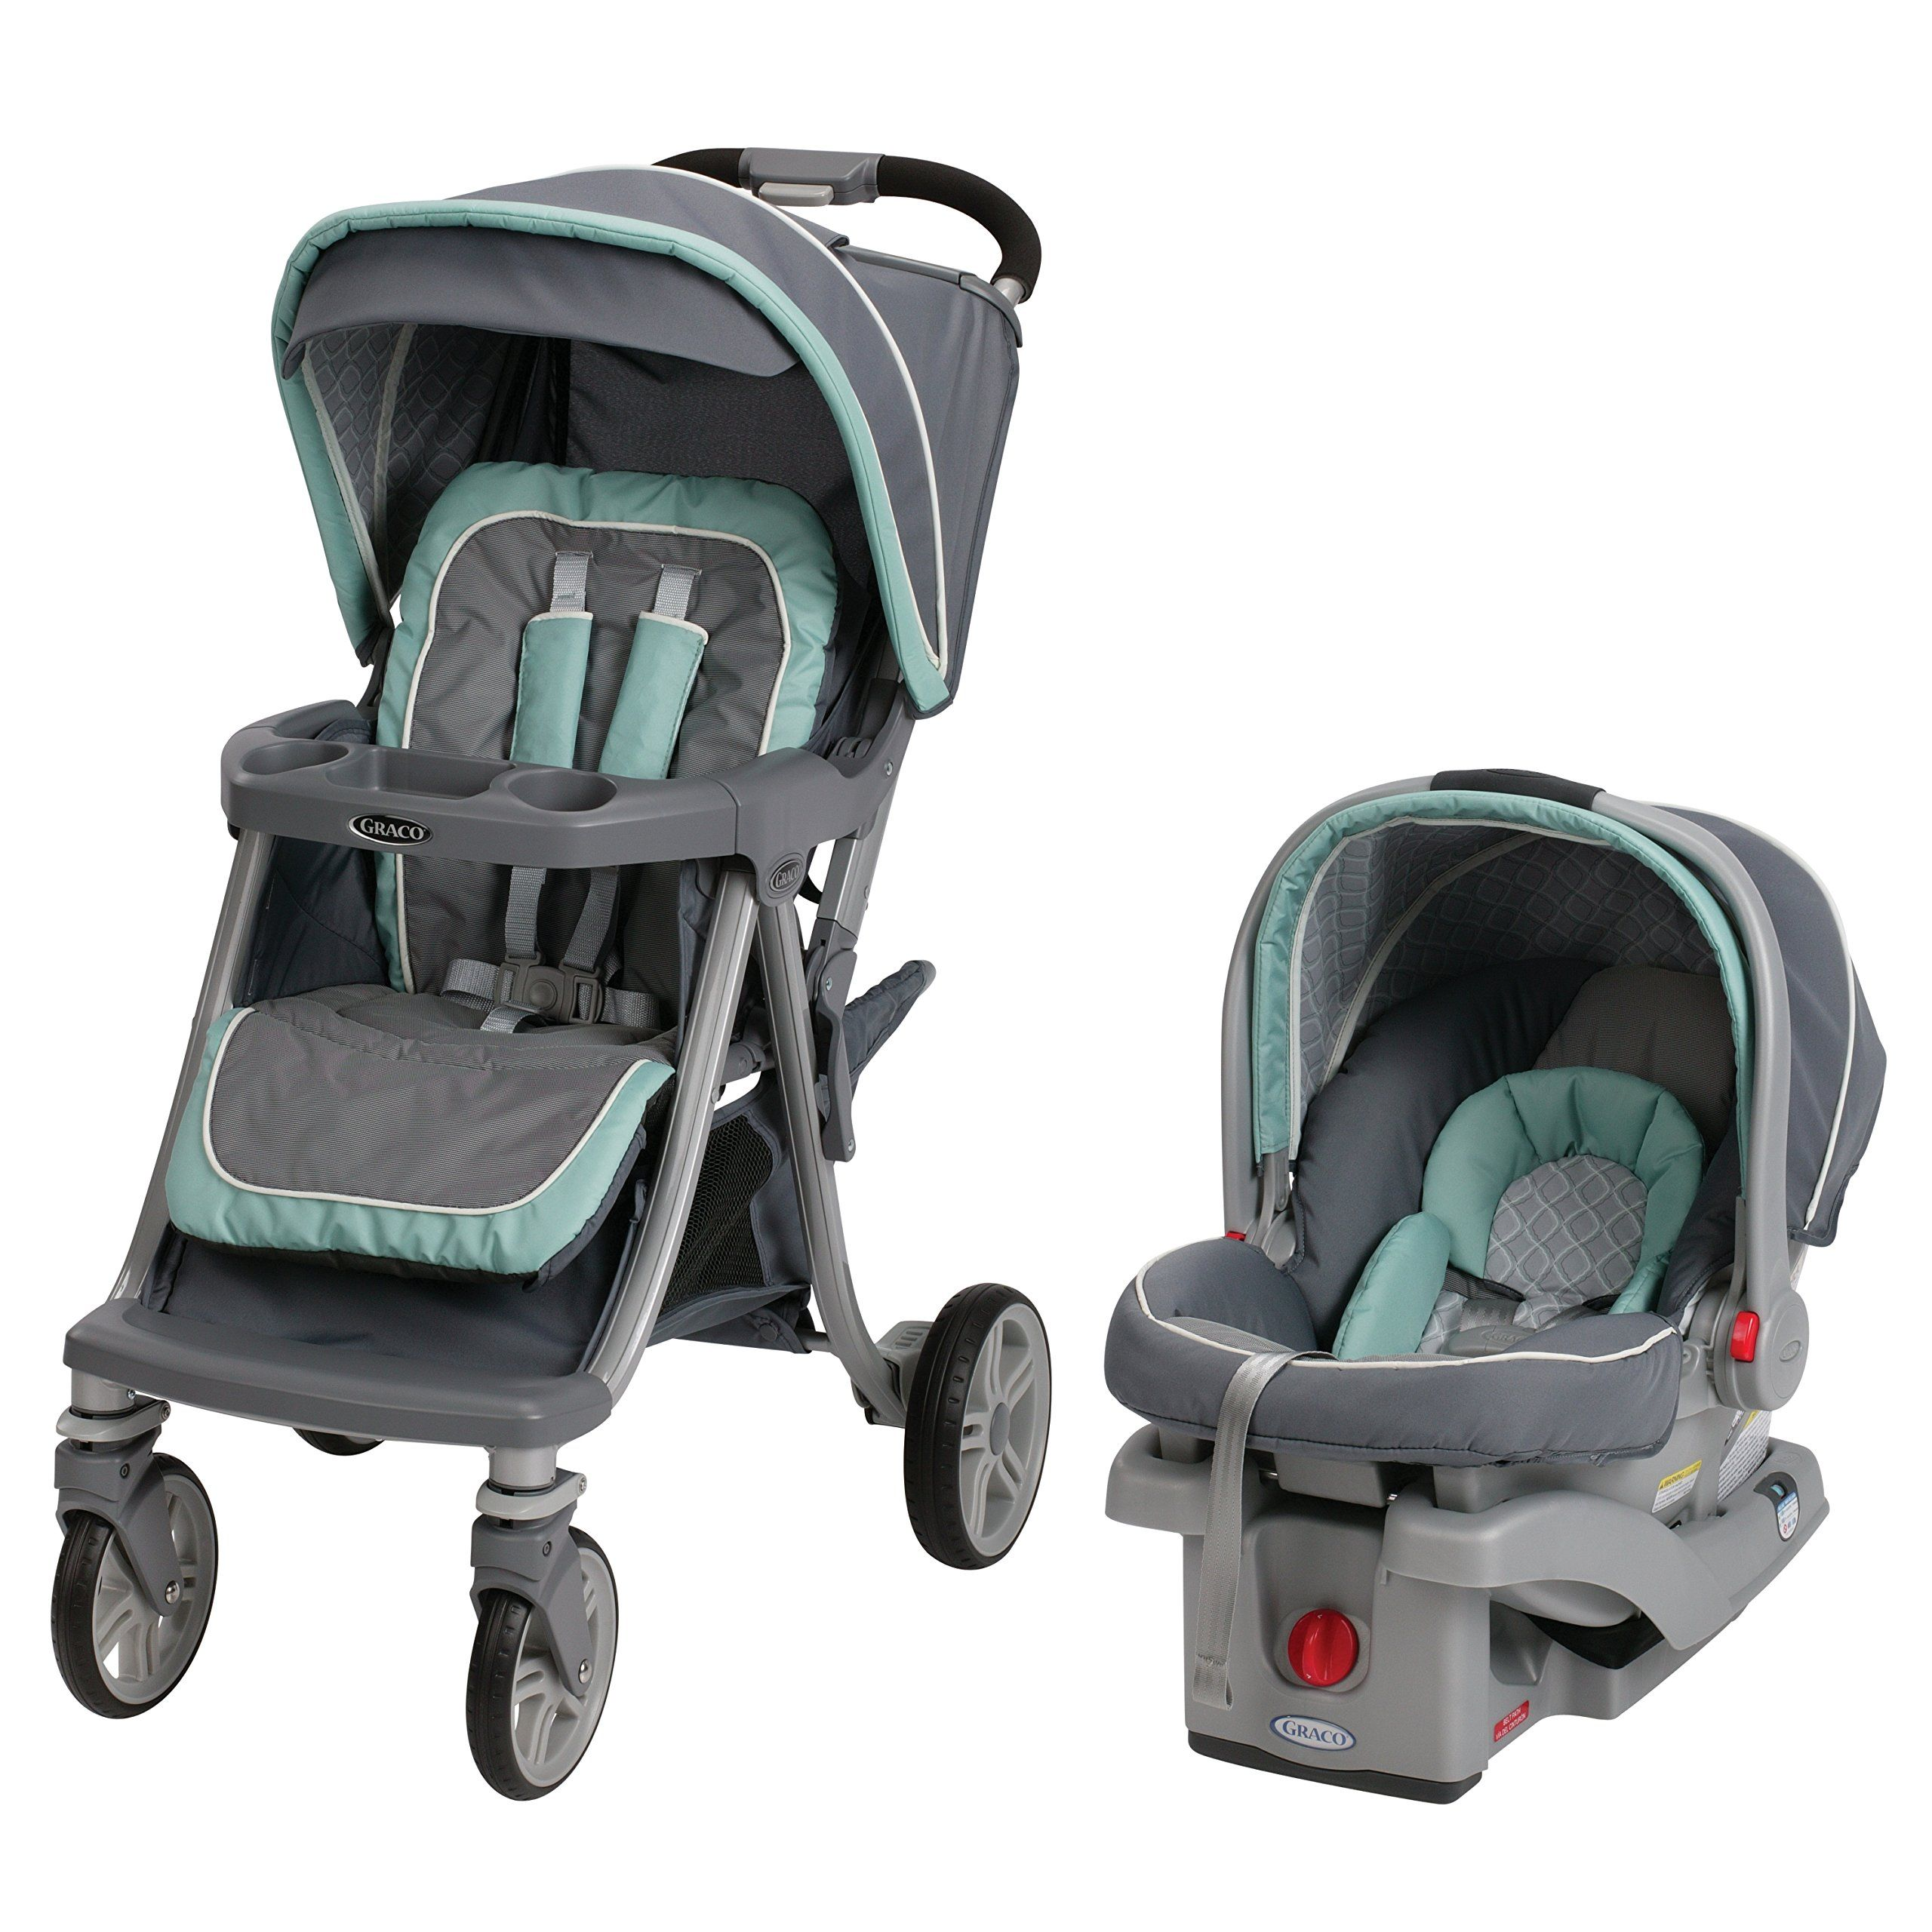 Graco Soho Travel System SnugRide Connect 30 Manor See more at · Baby StrollersDouble